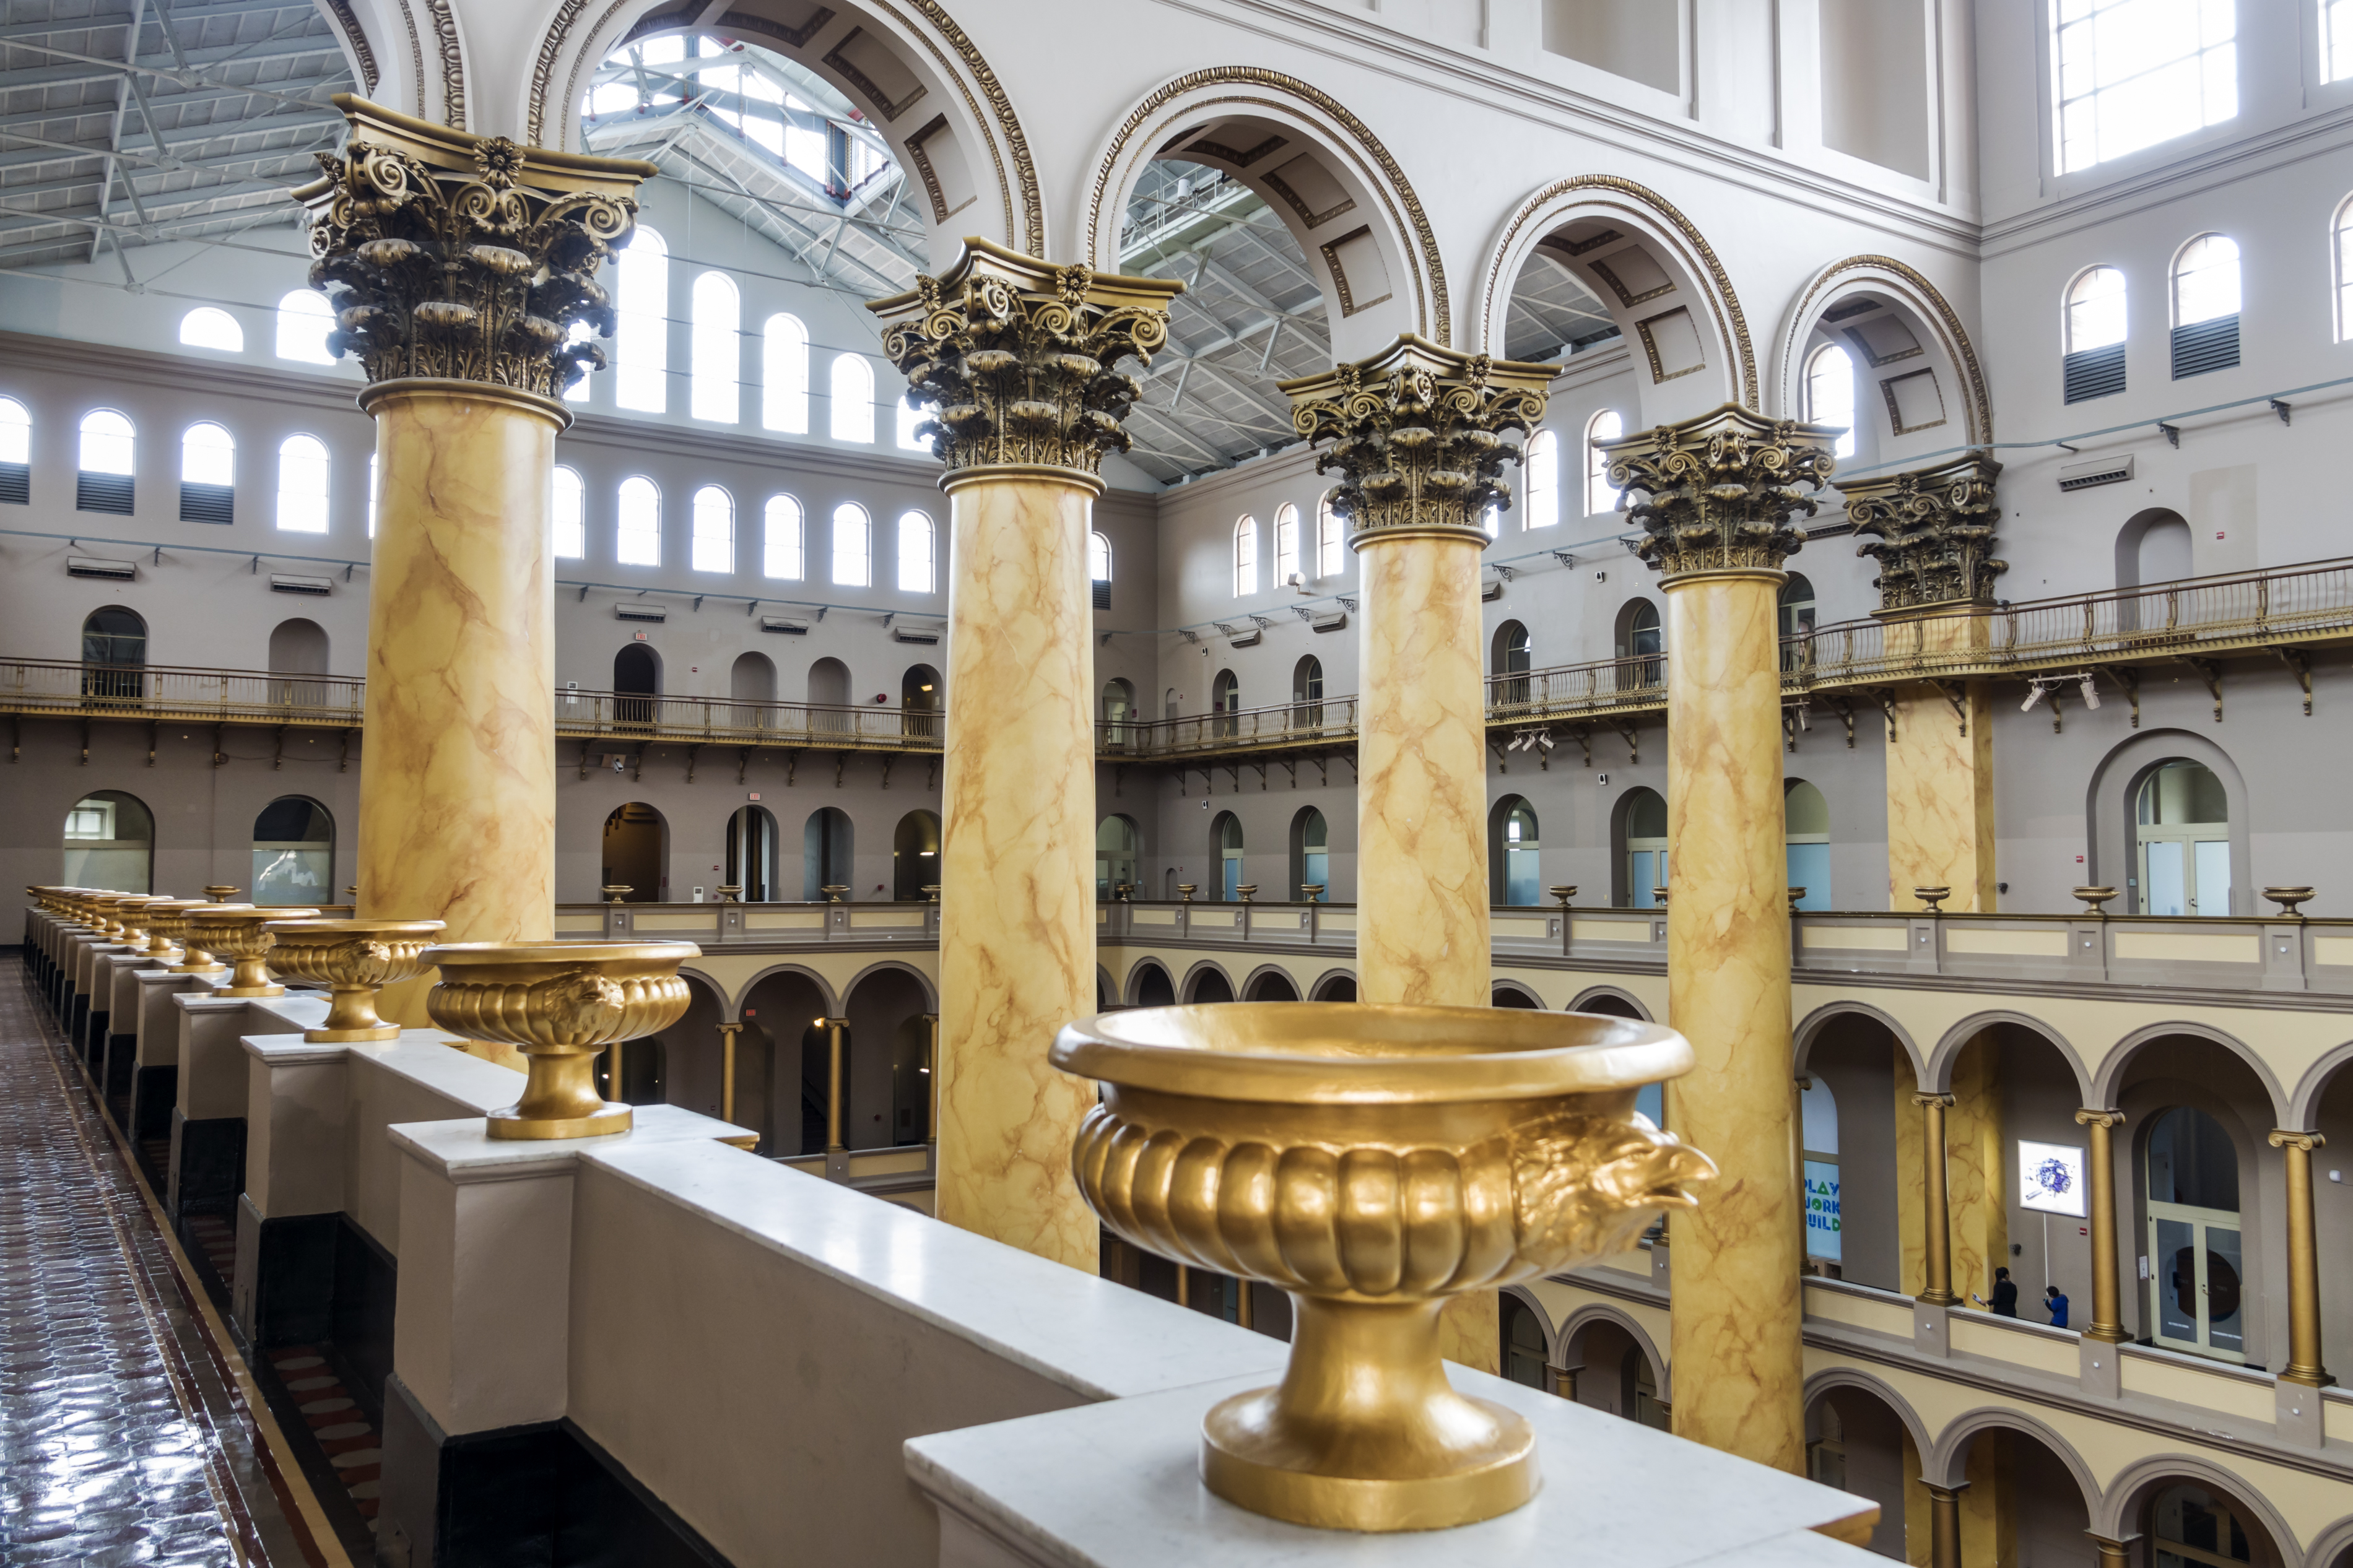 A row of Corinthian columns inside a grand romanesque building. There are gold urns along a balcony.